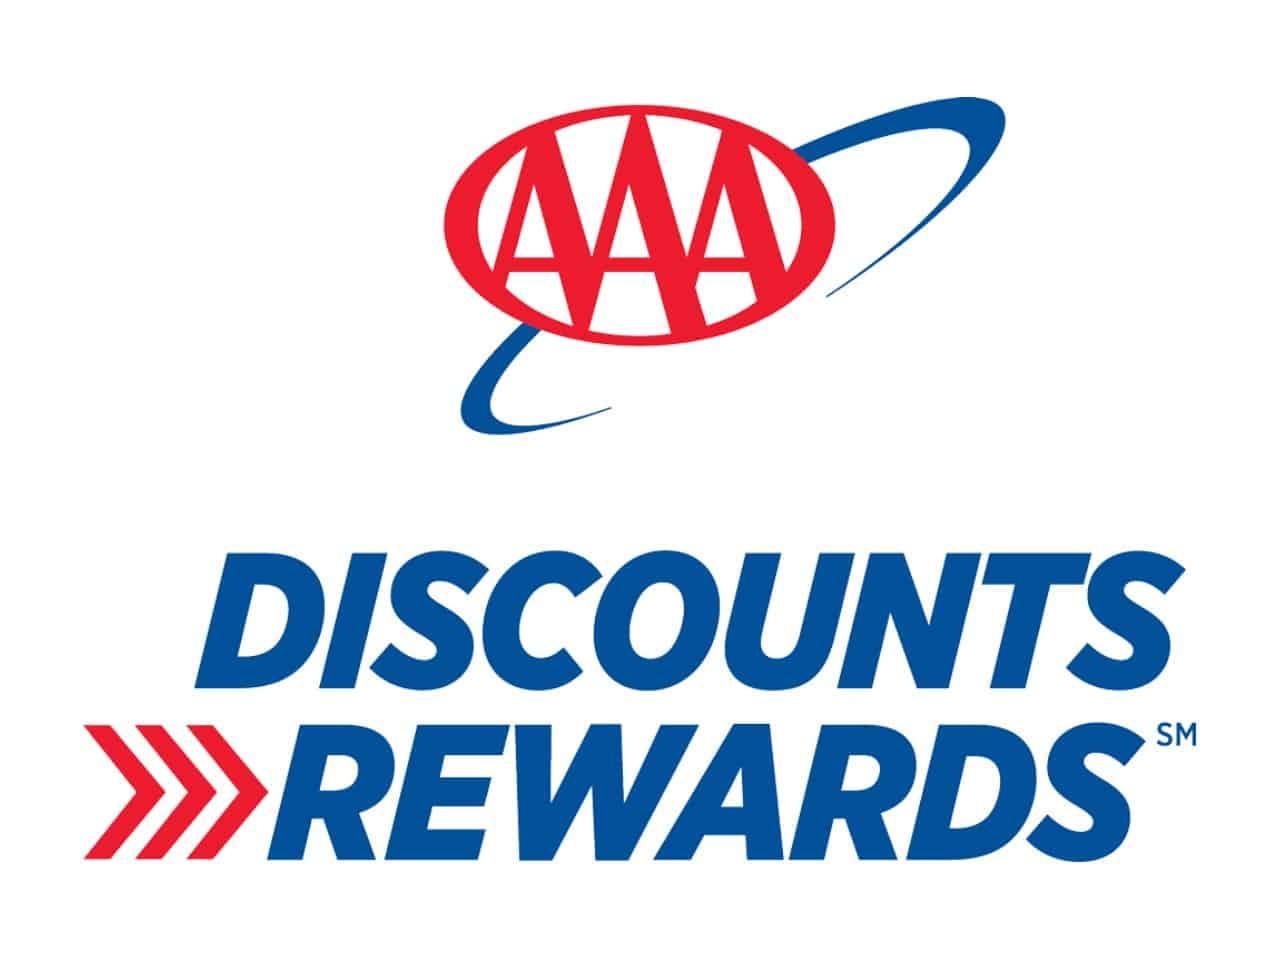 AAA of Wilsonville, OR offers discount for new window replacement and installation.